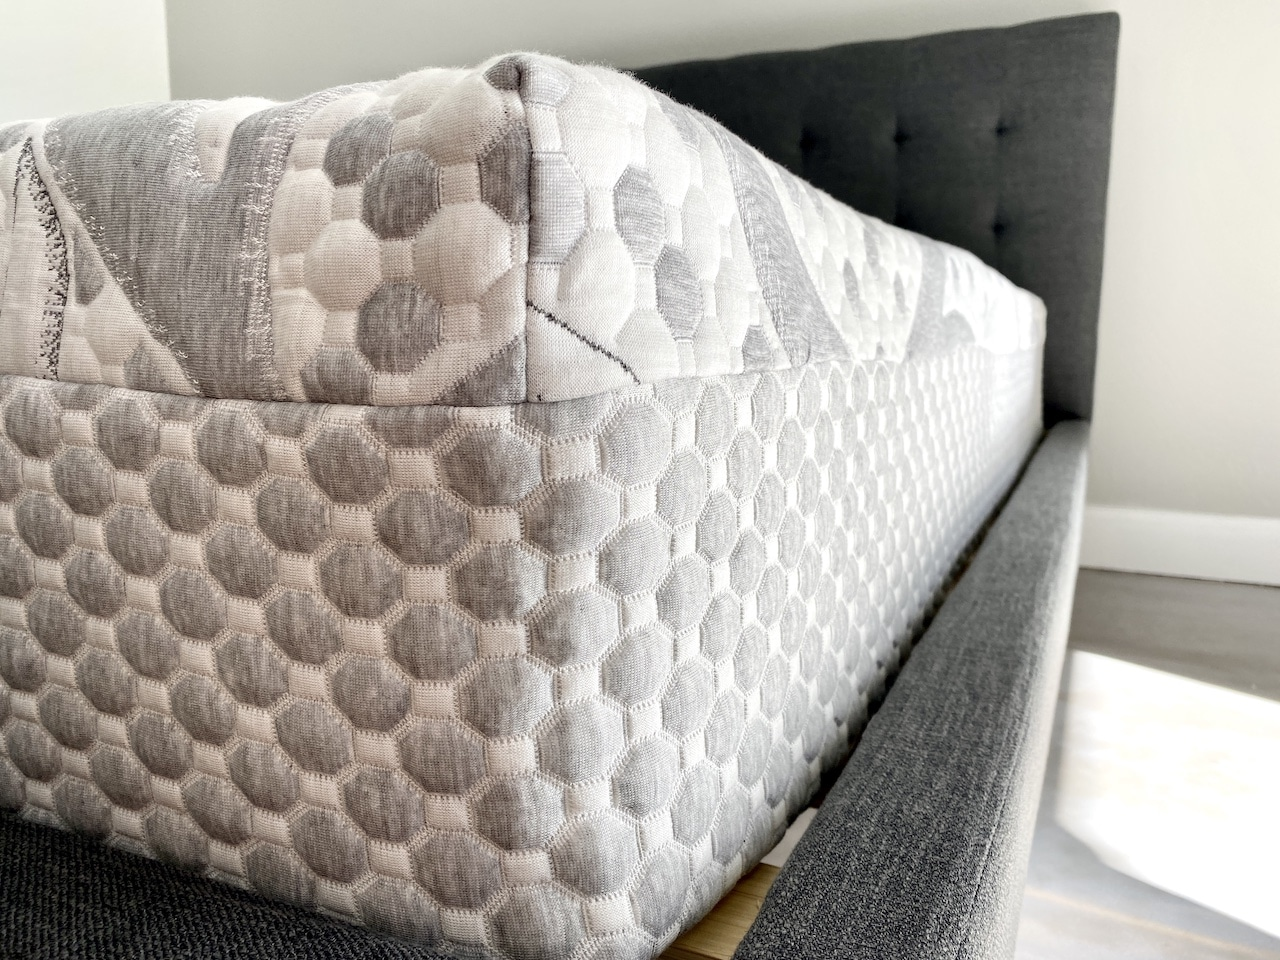 CRaVE Mattress Review